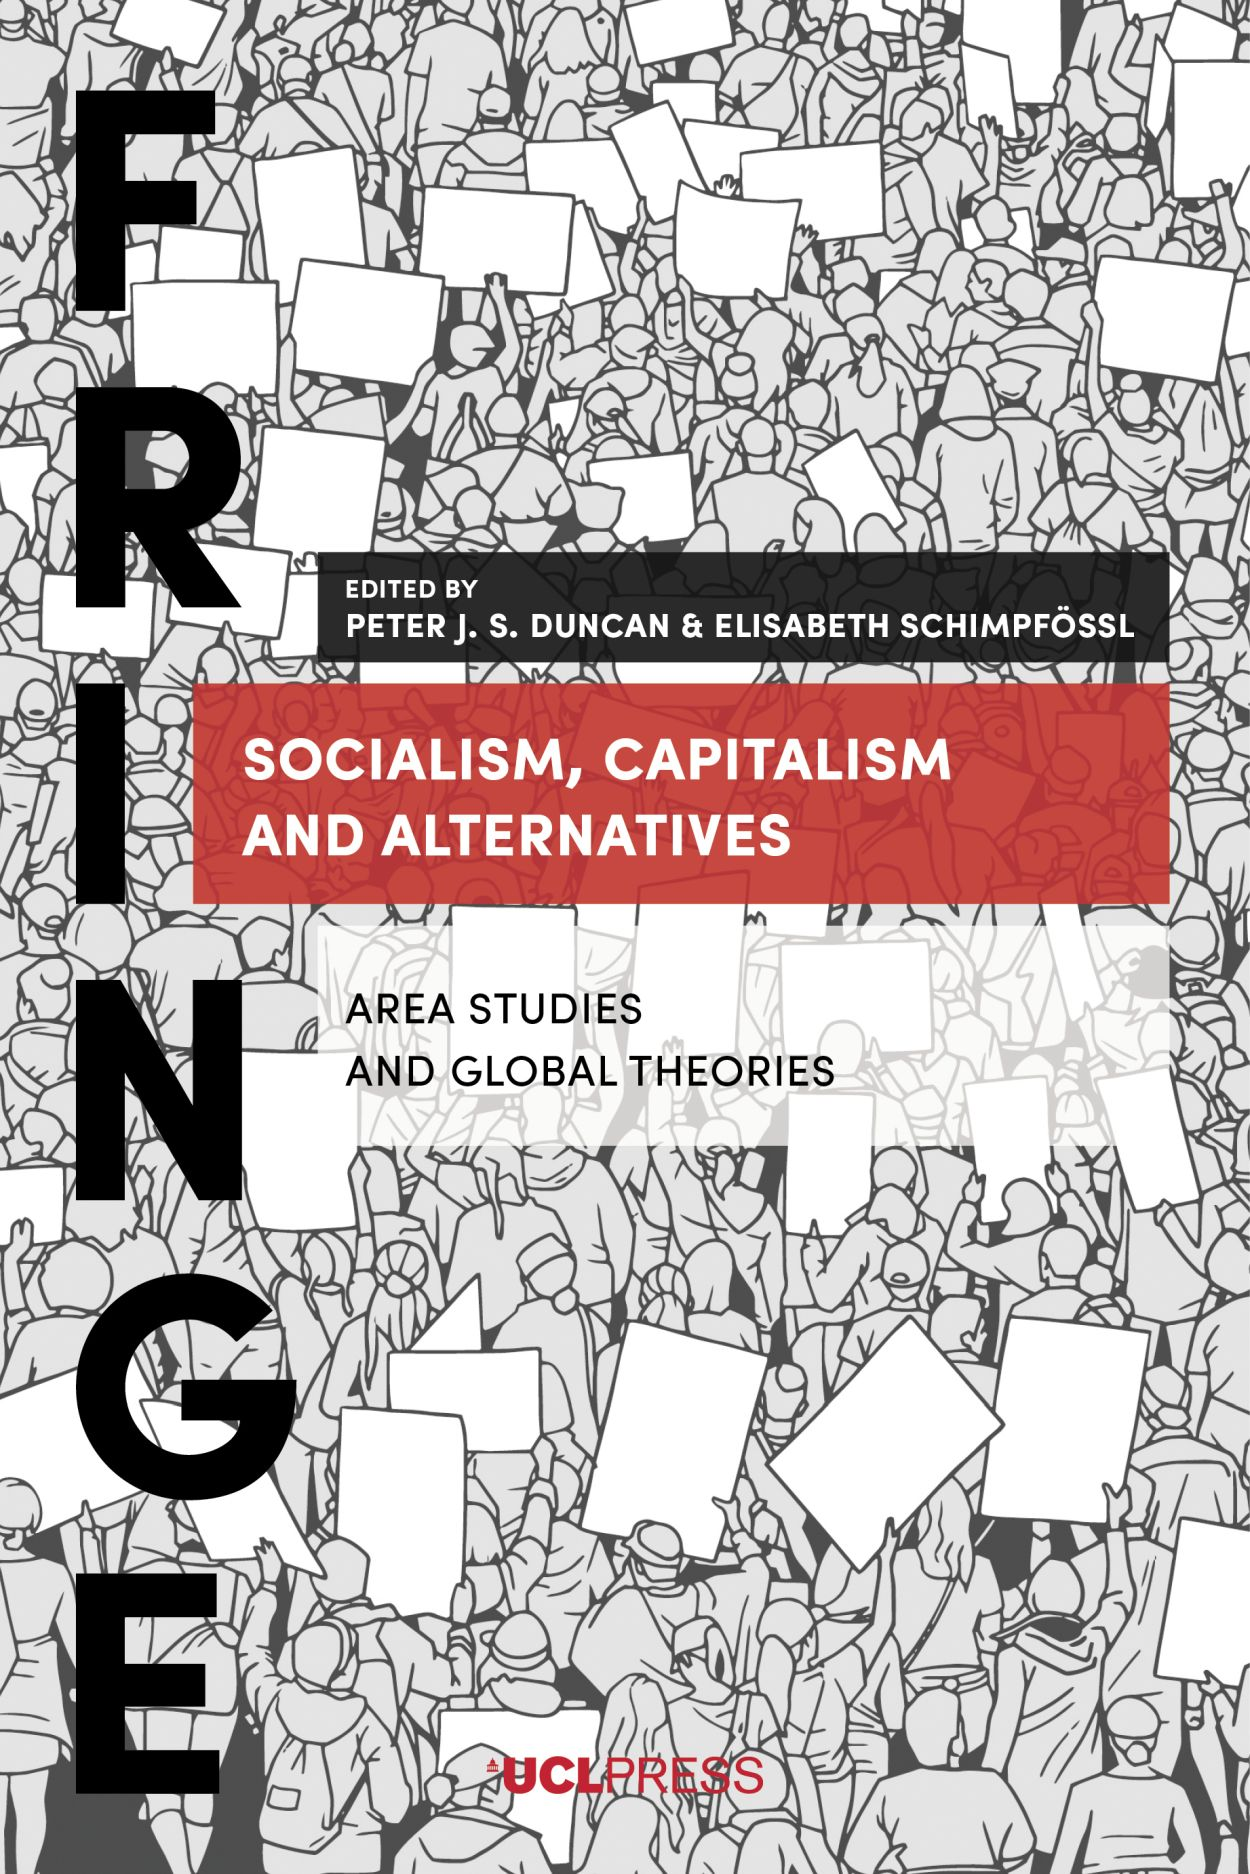 Socialism, Capitalism and Alternatives: Area Studies and Global Theories